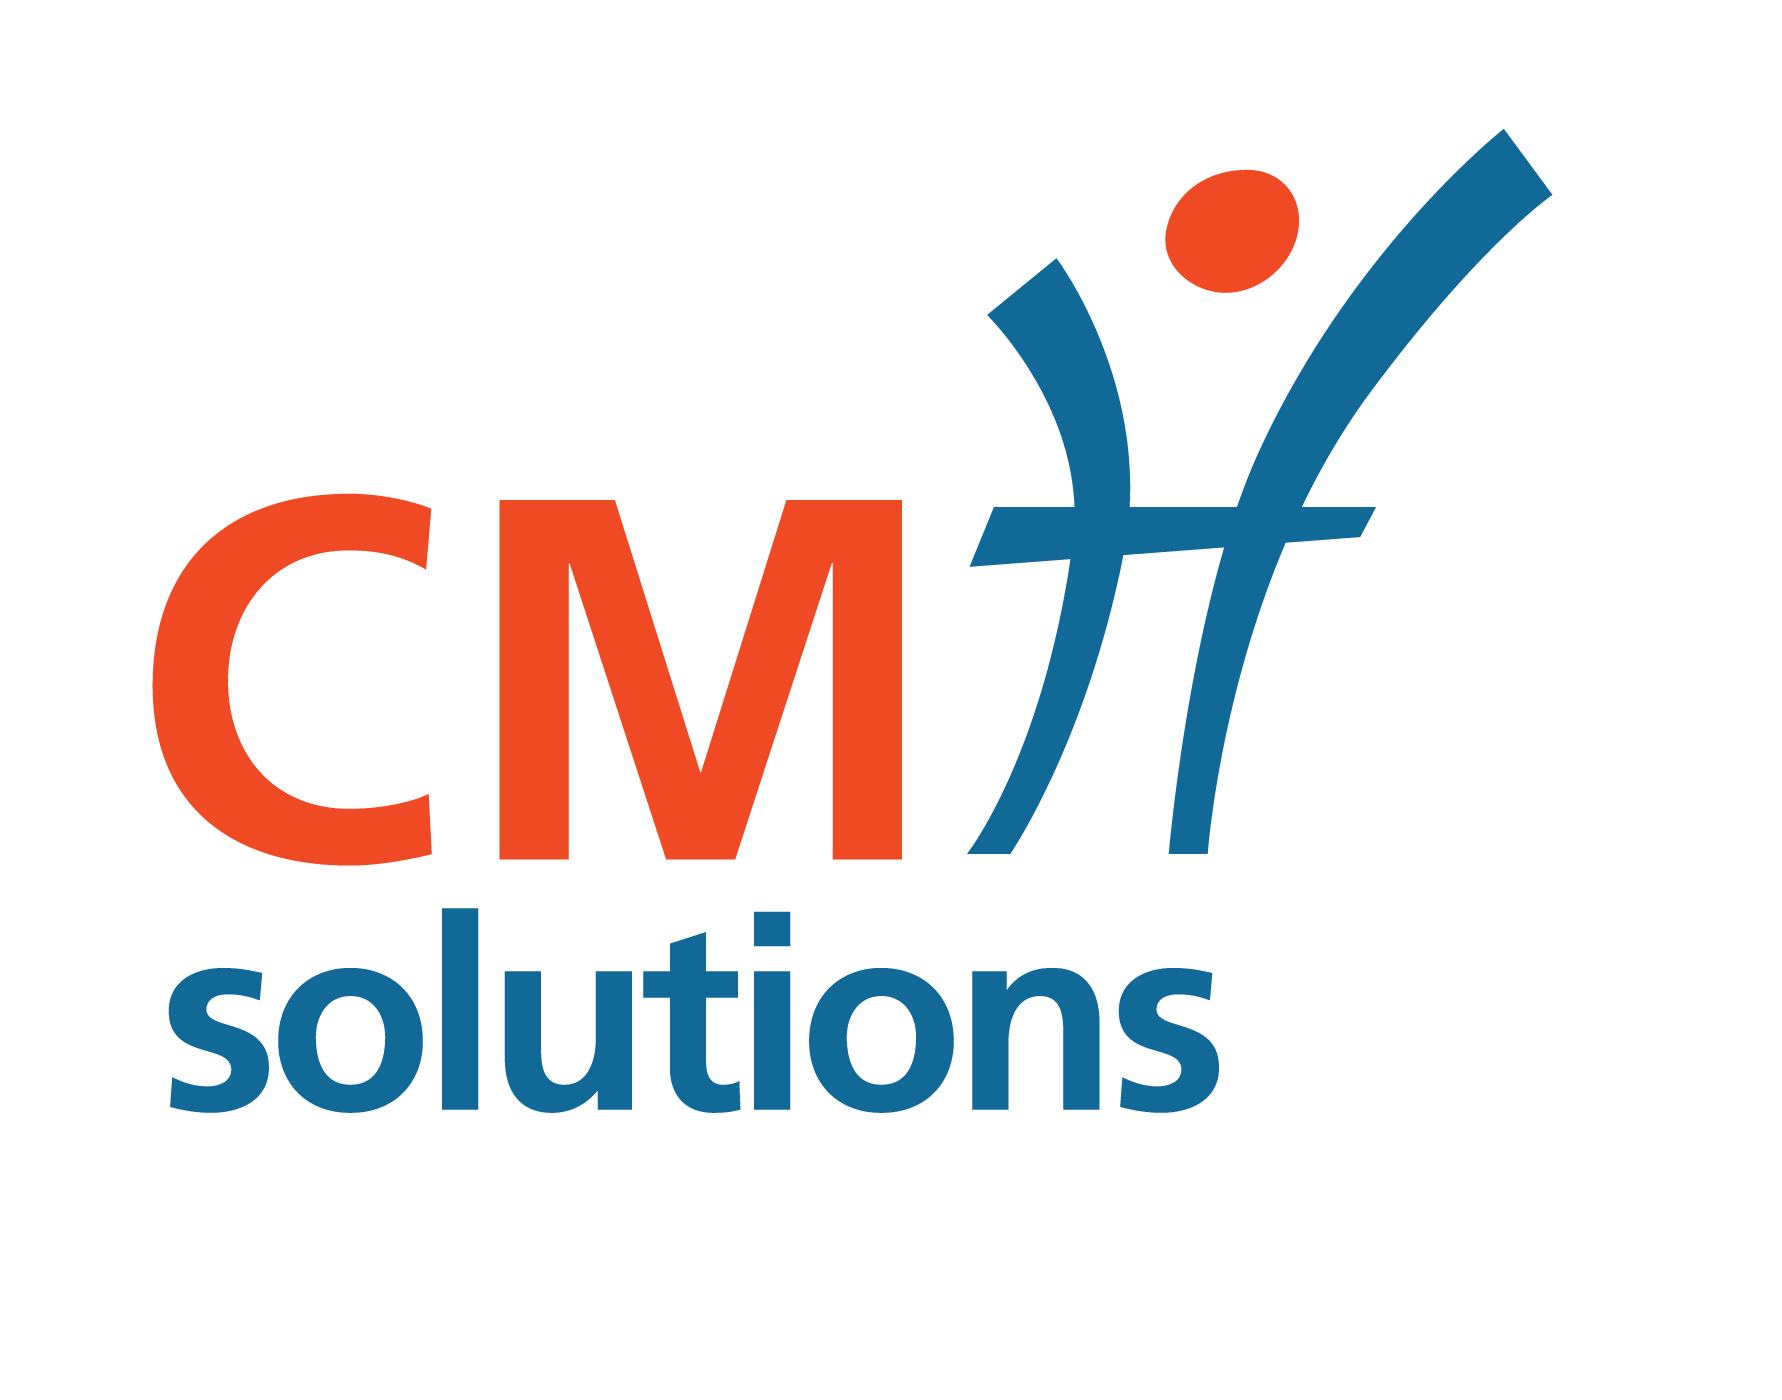 Humaid CMH Solutions